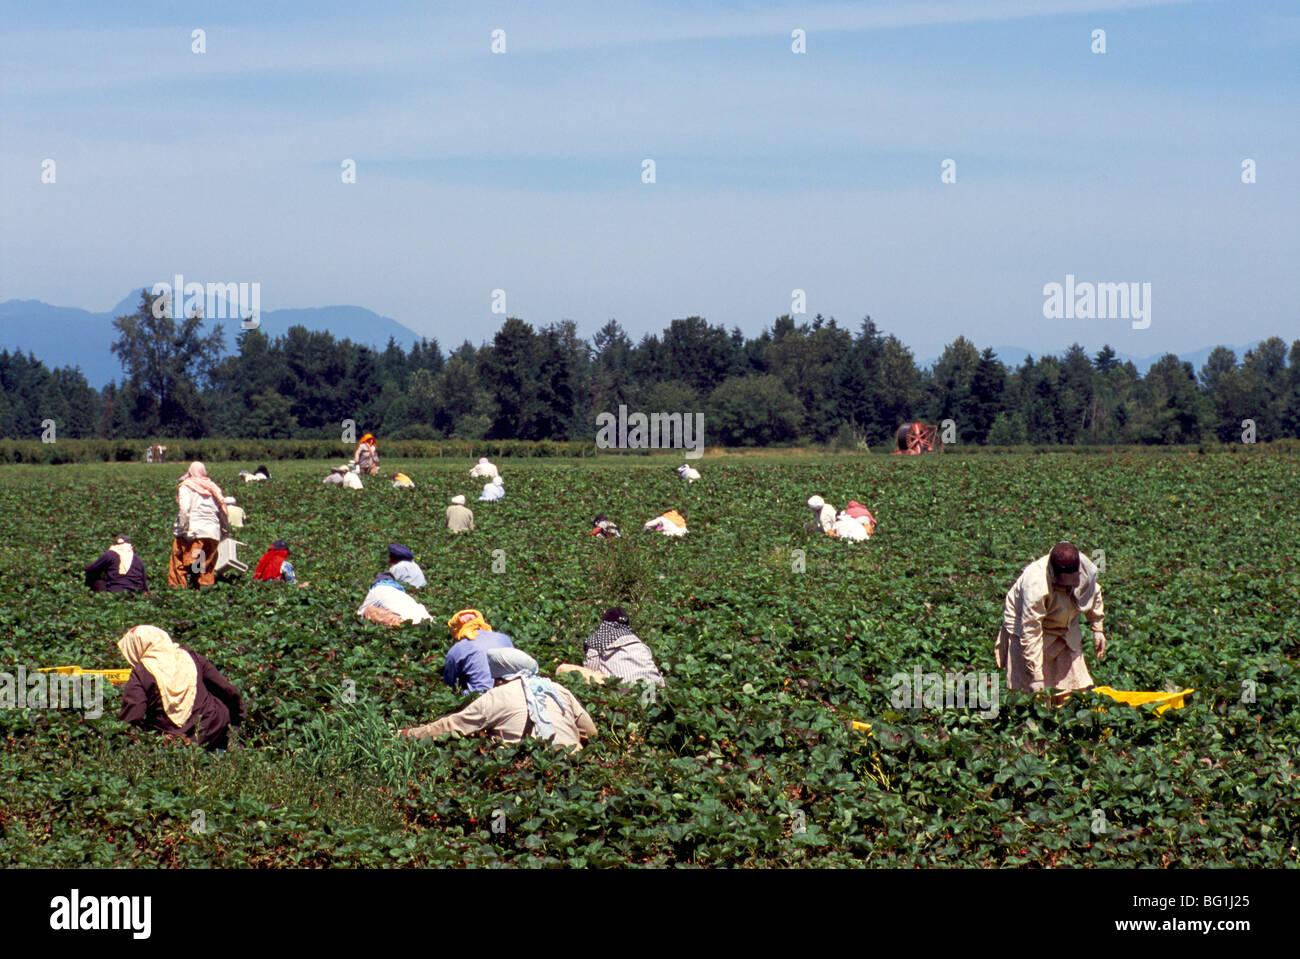 FARM WORKERS & IMMIGRATION